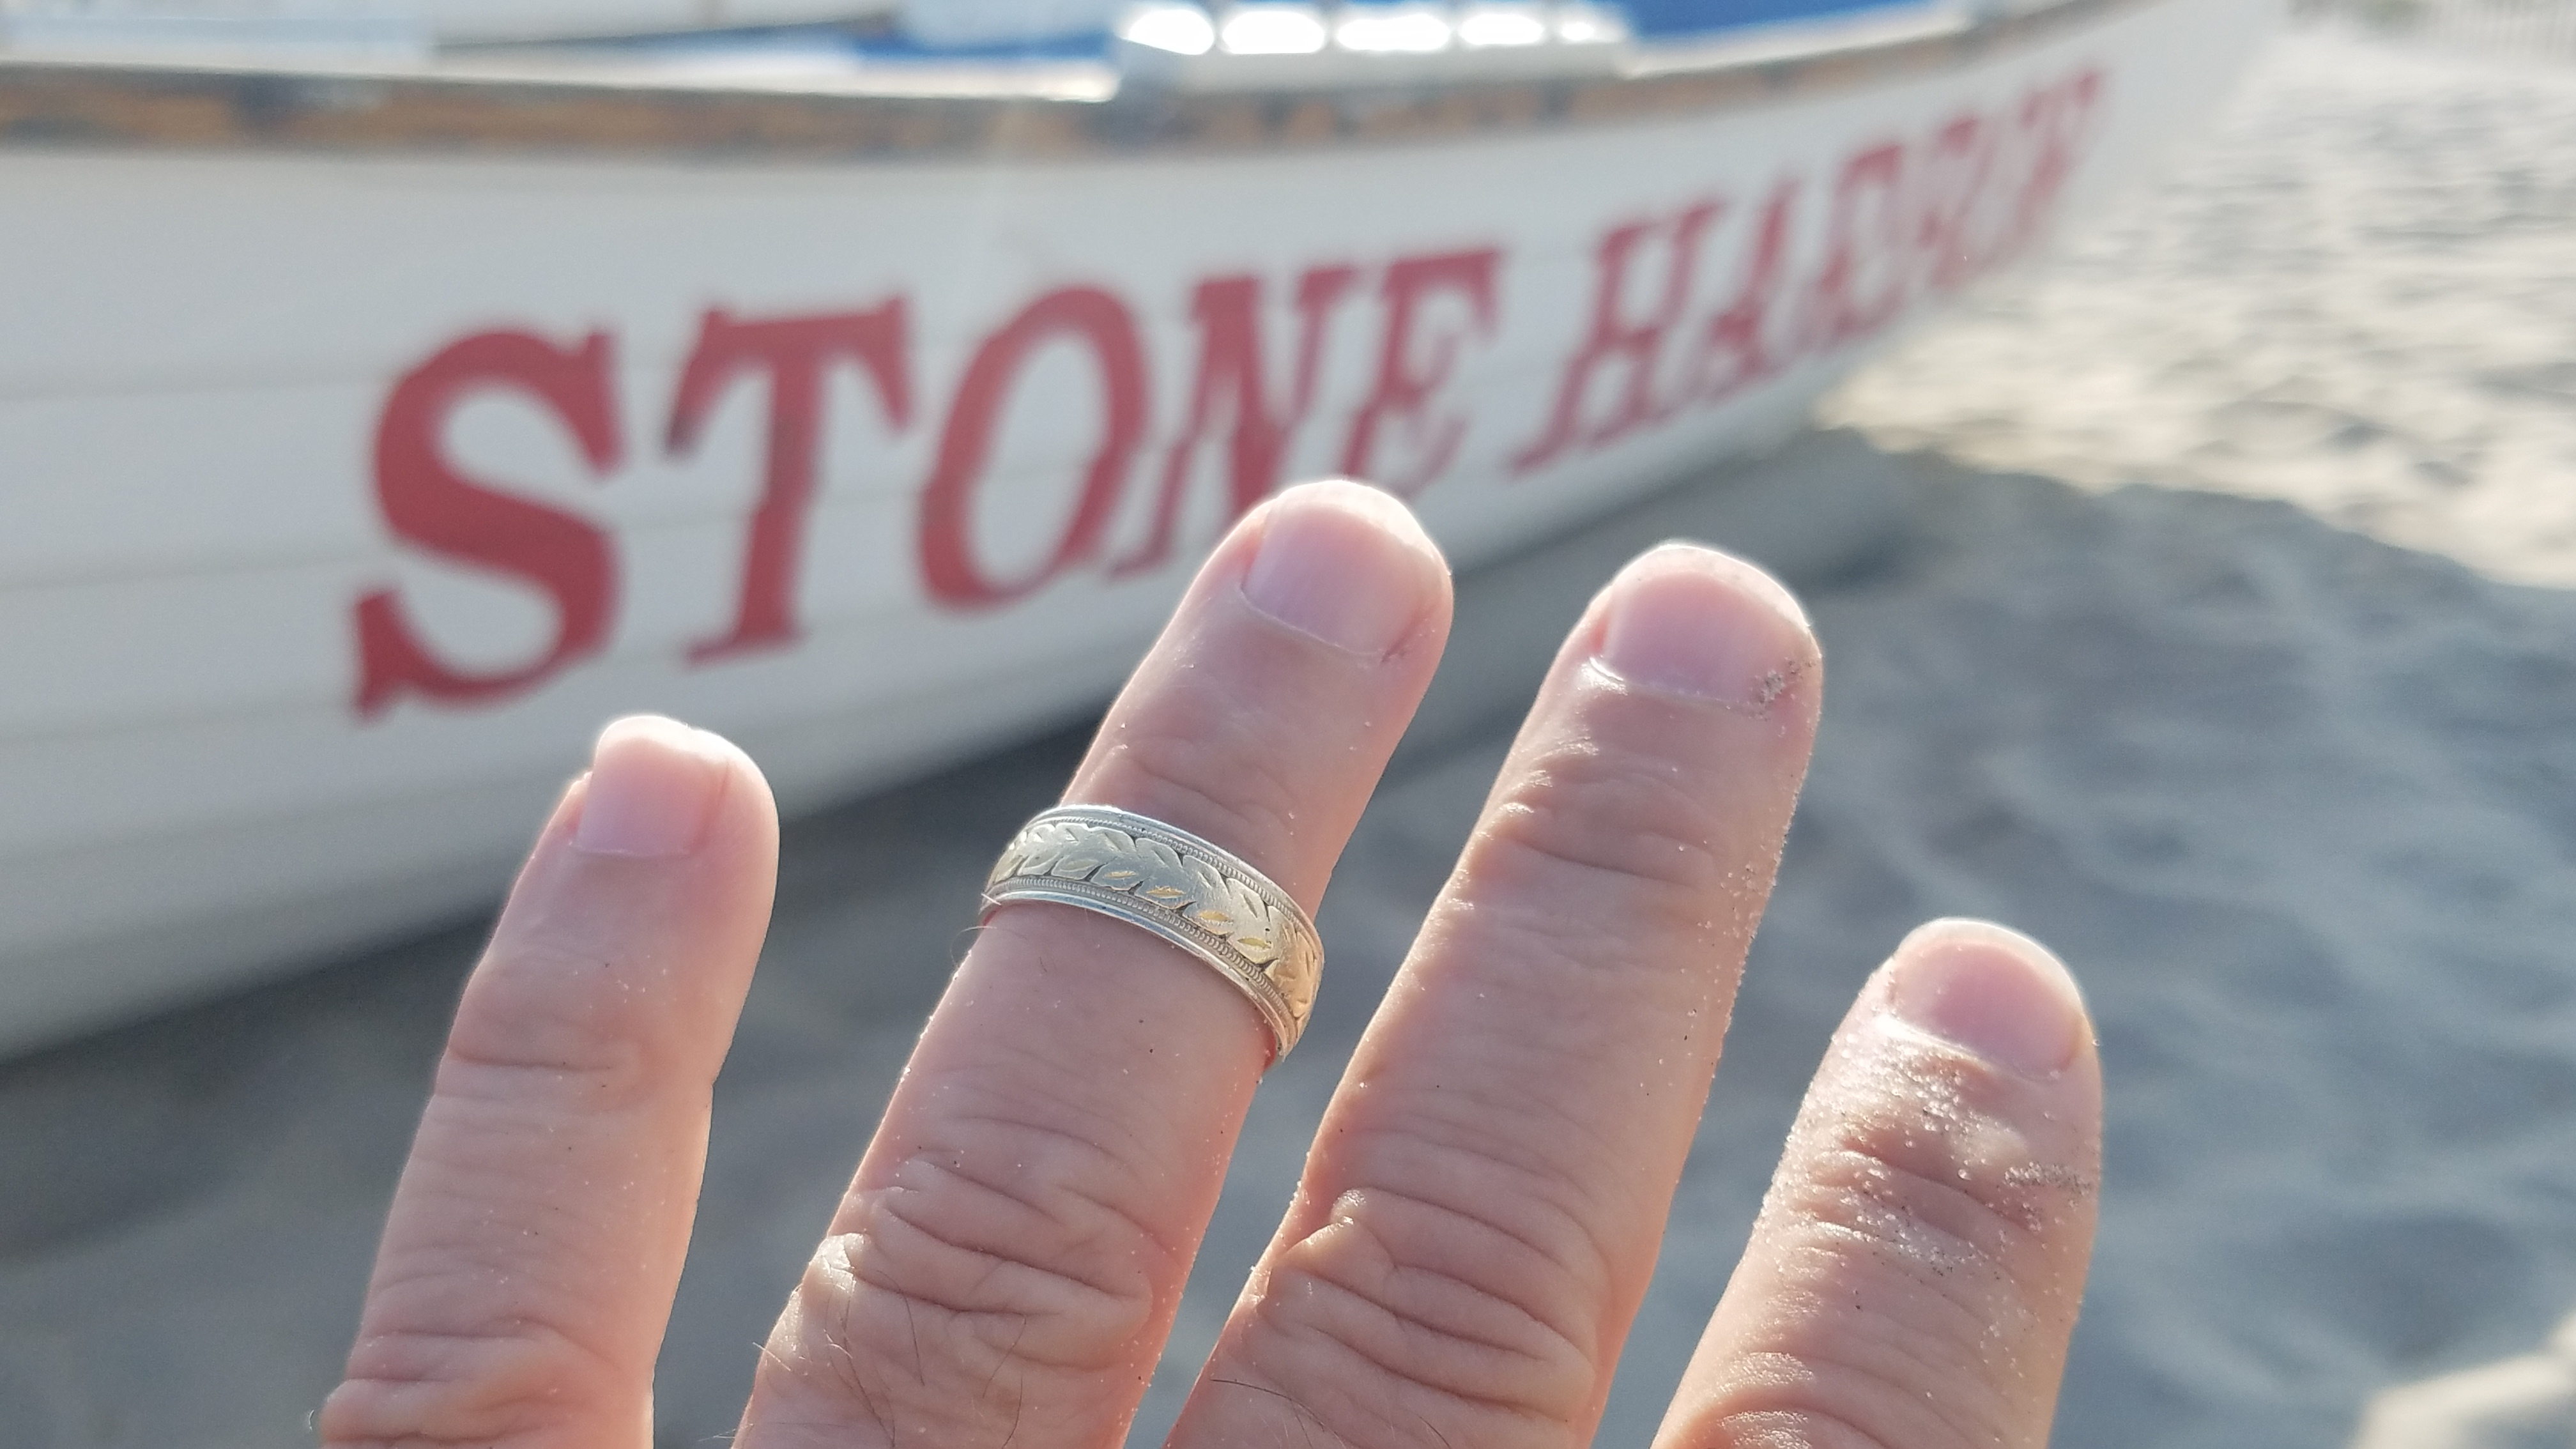 day trip to stone harbor includes lost wedding ring - Lost Wedding Ring